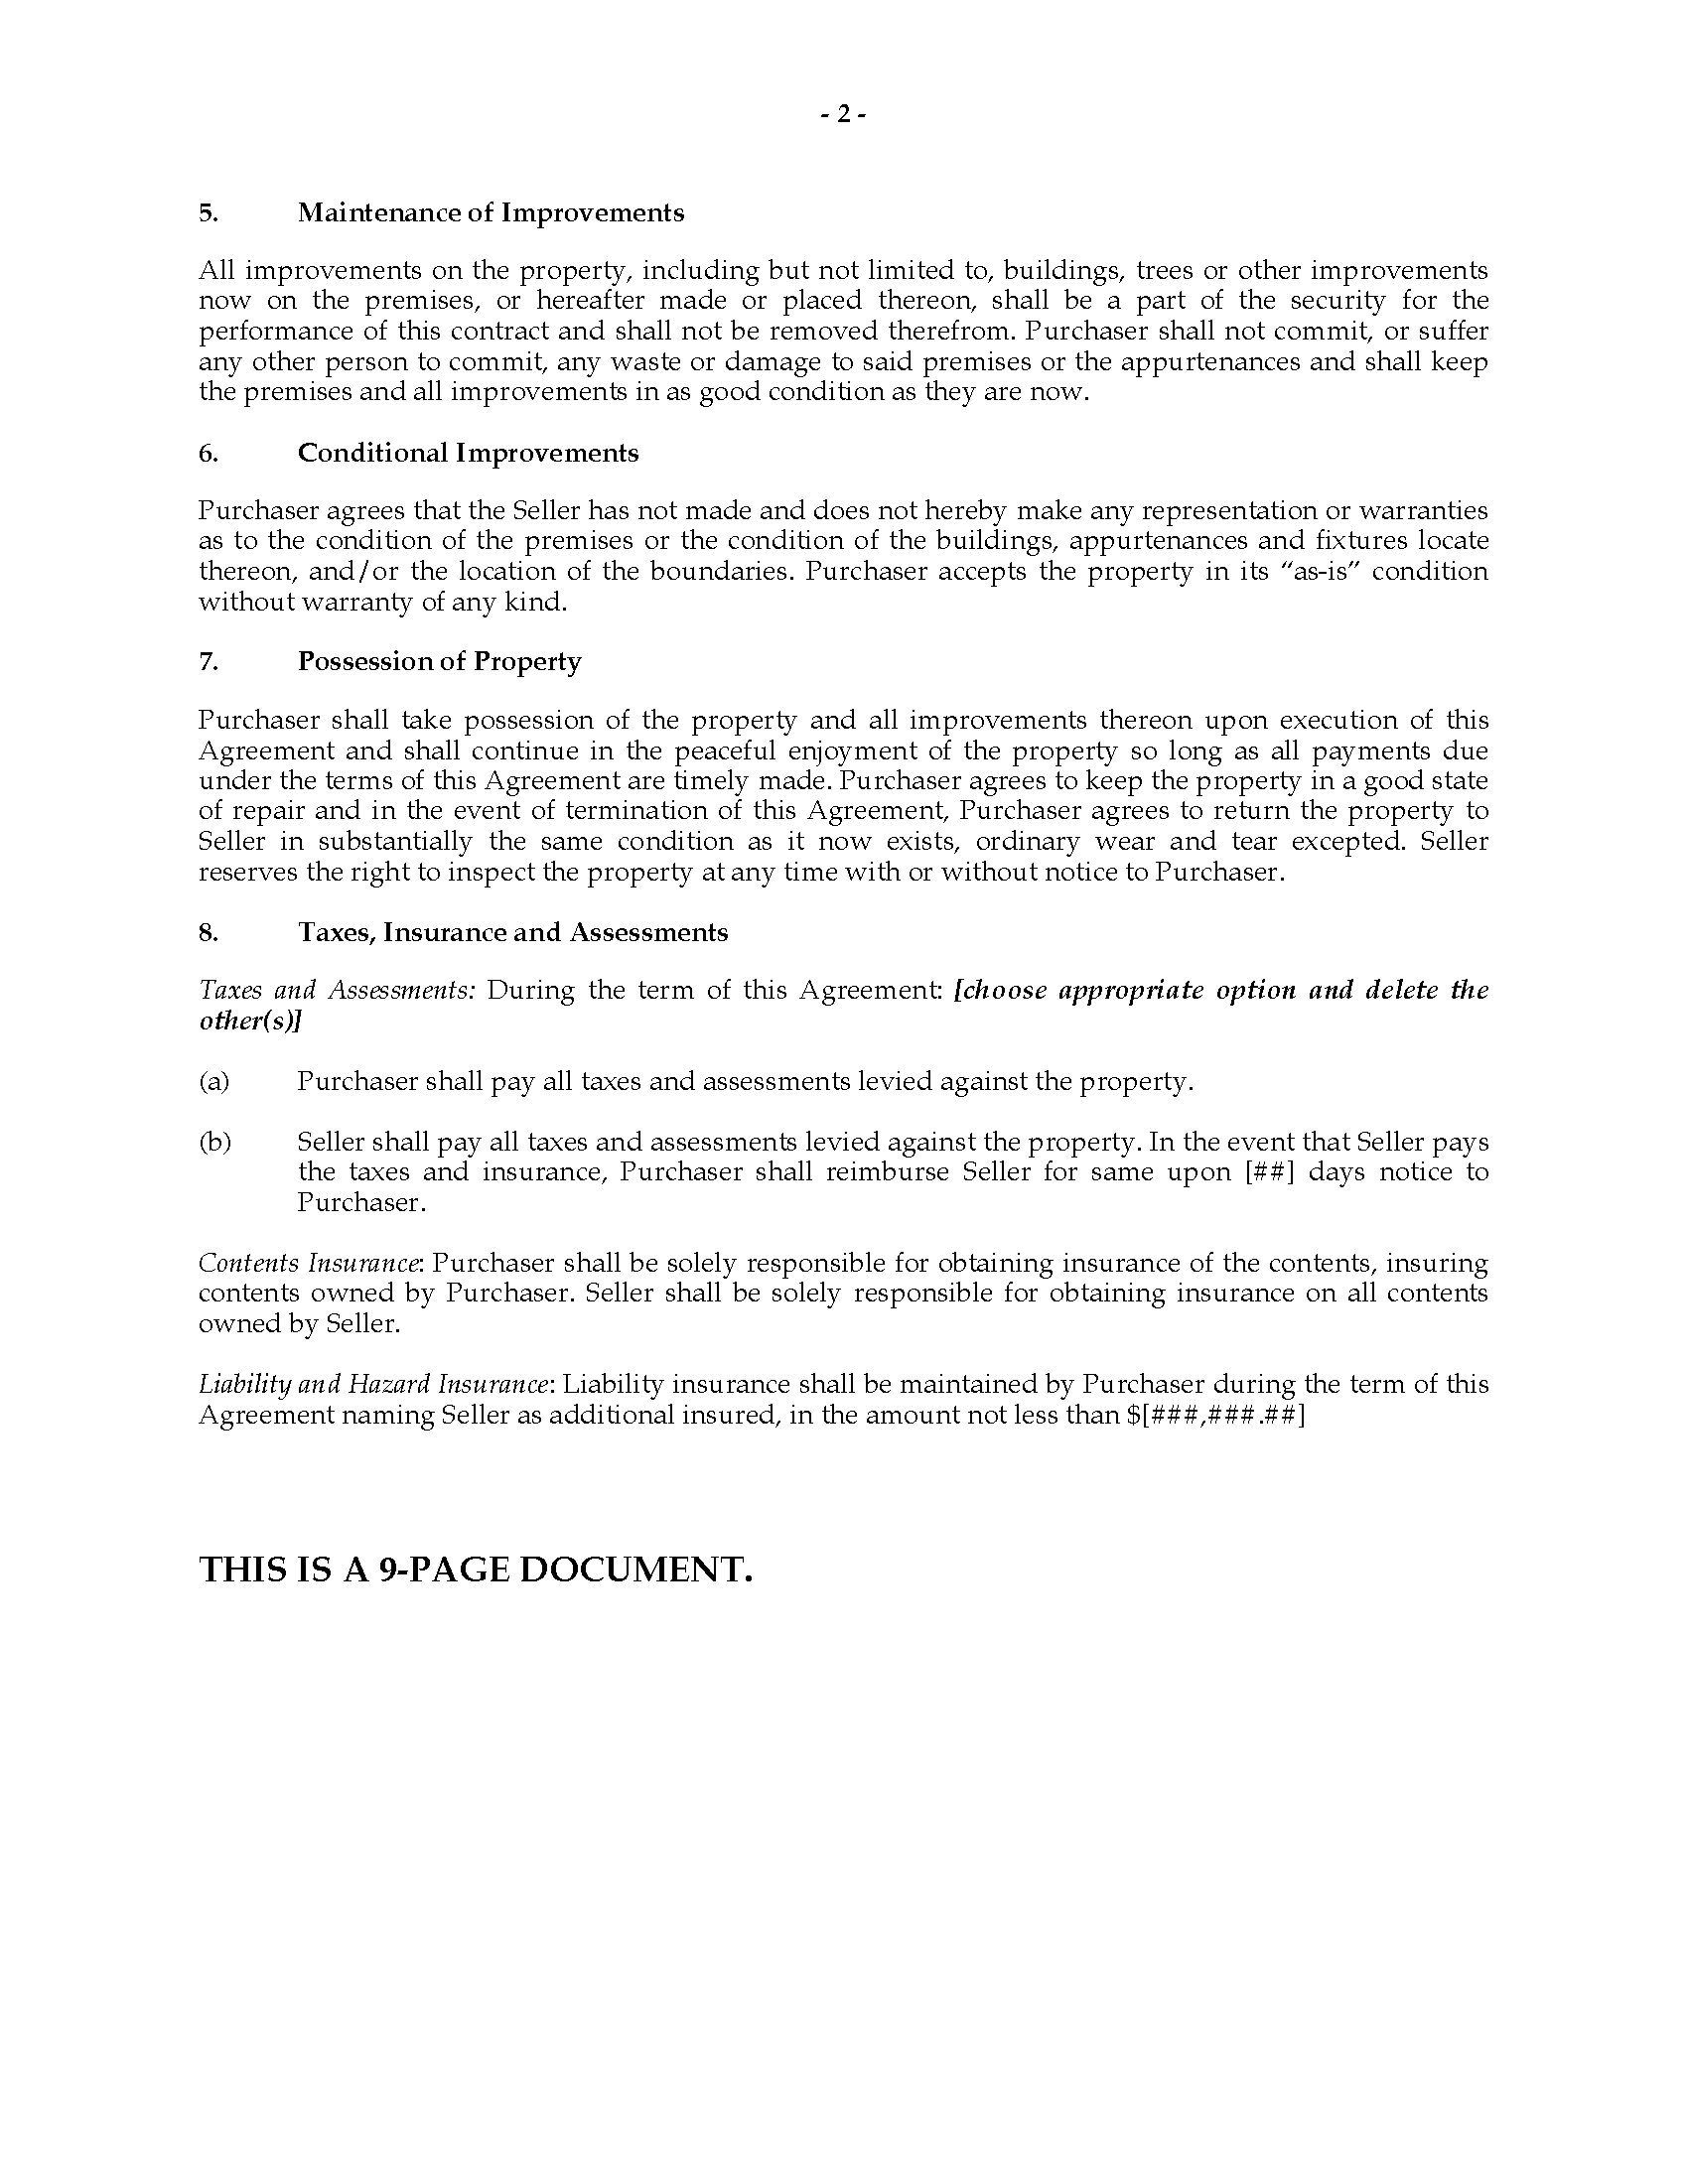 Contract For Deed Template Image collections - Template Design Ideas